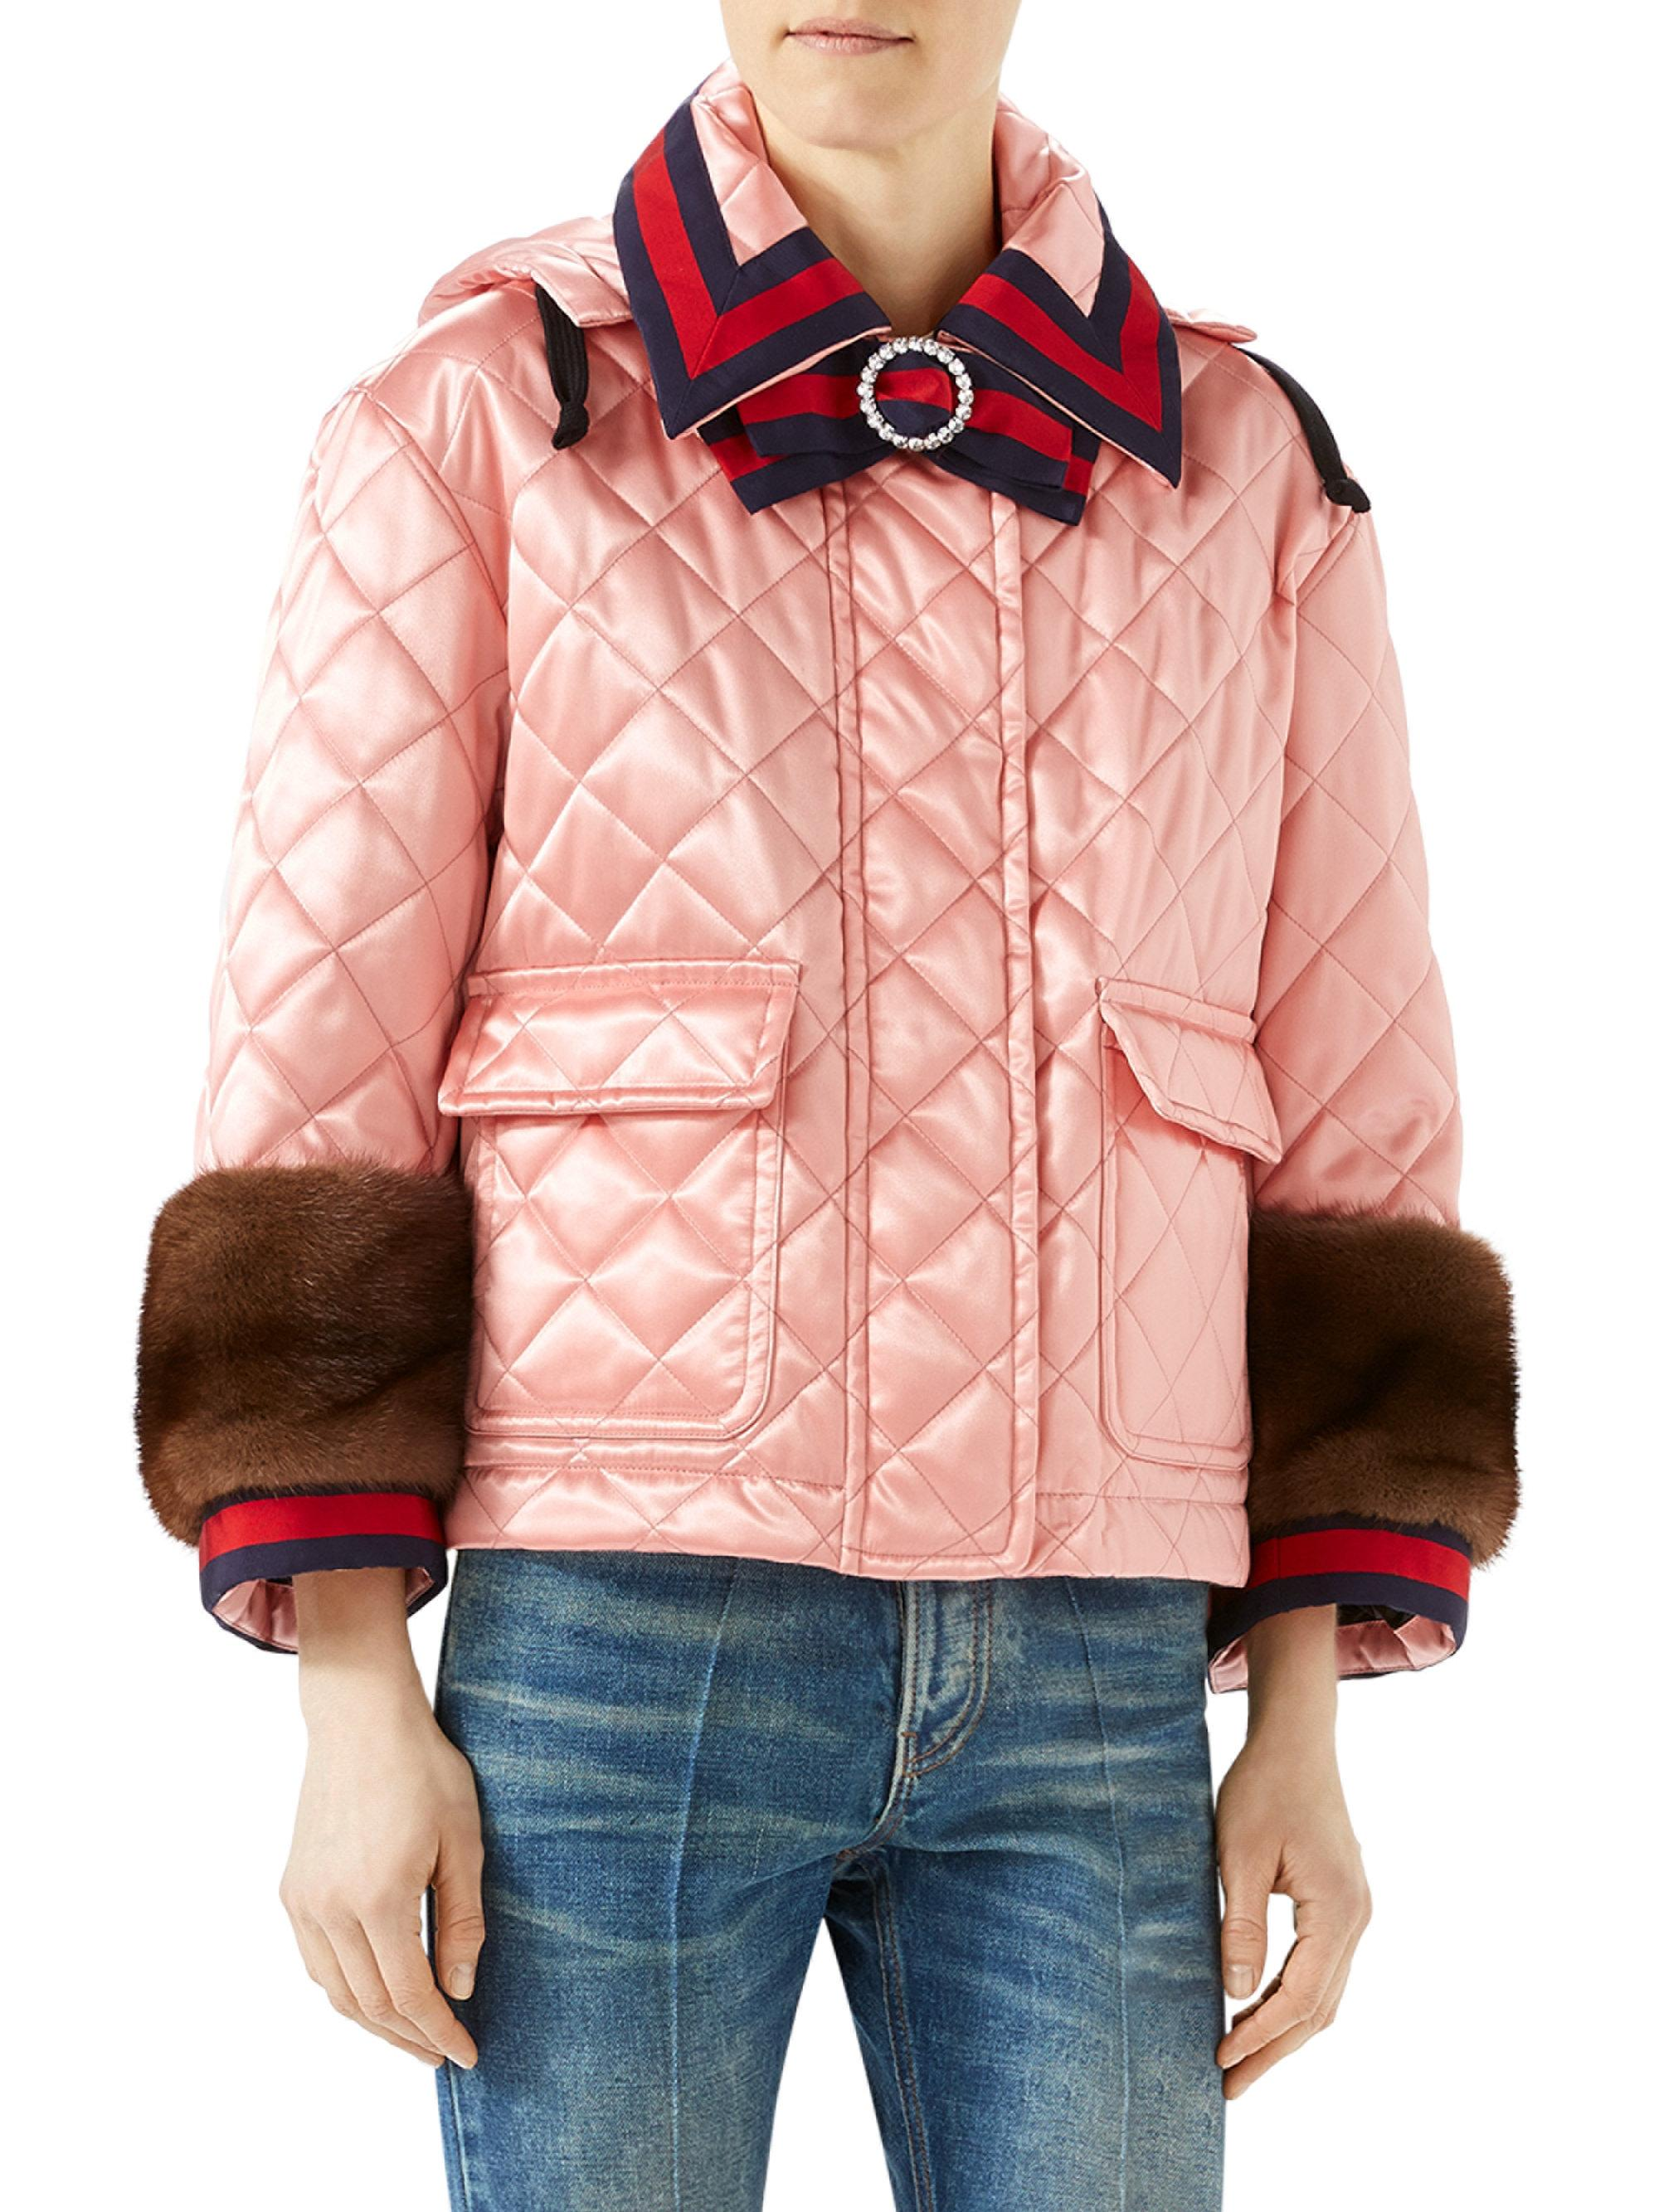 Lyst - Gucci Mink-trim Quilted Jacket in Pink : gucci quilted jacket - Adamdwight.com